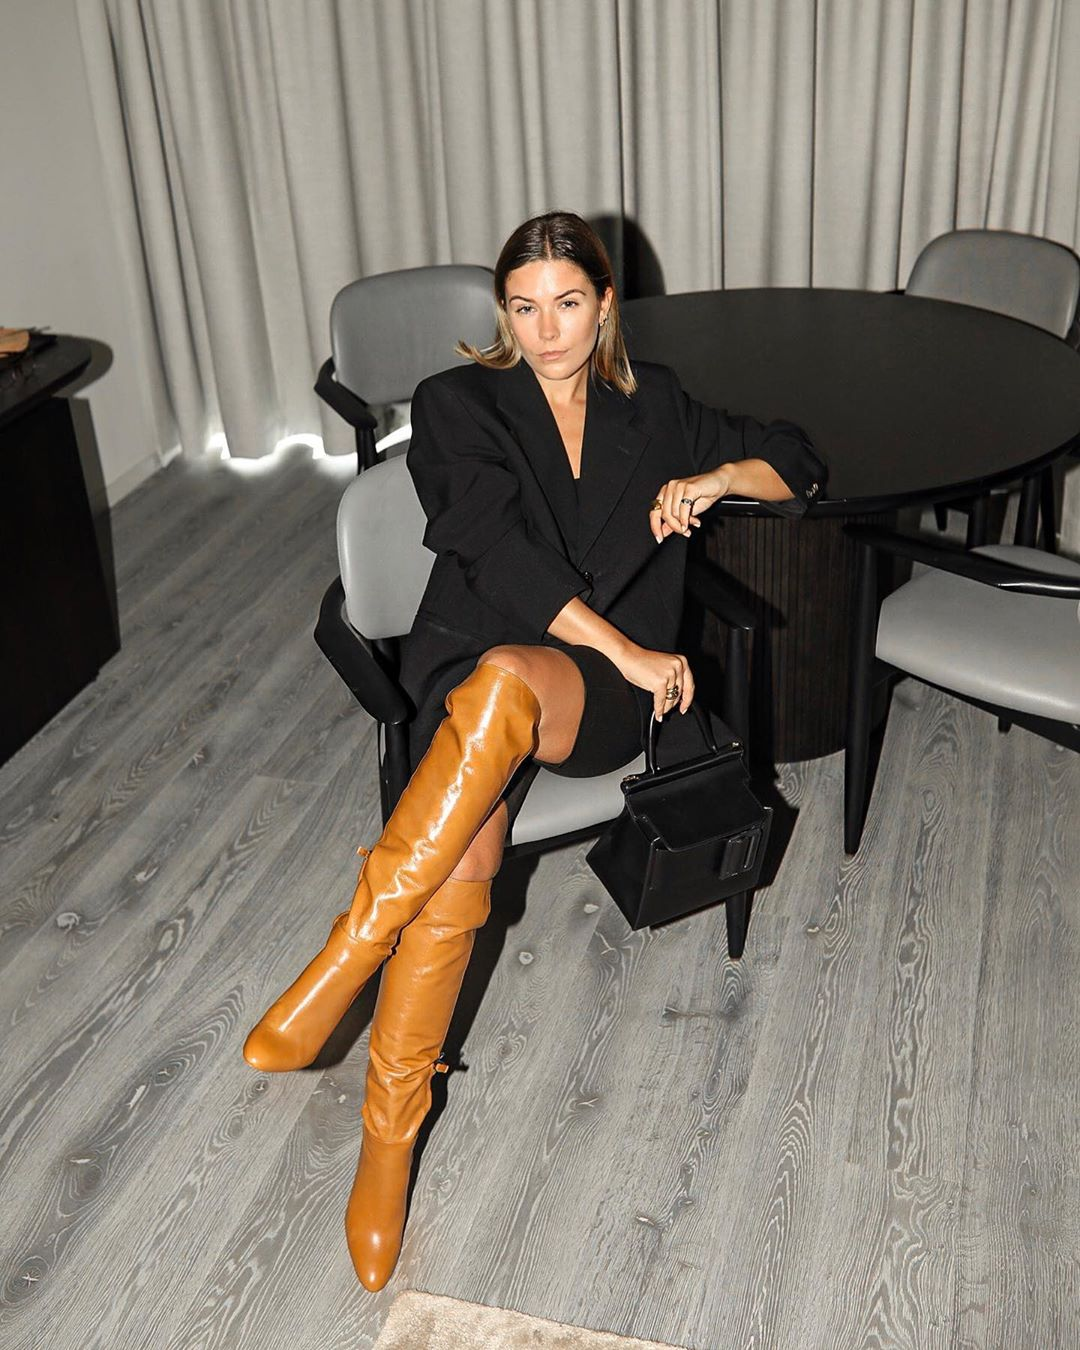 The Best Over-the-Knee Boots for Fall